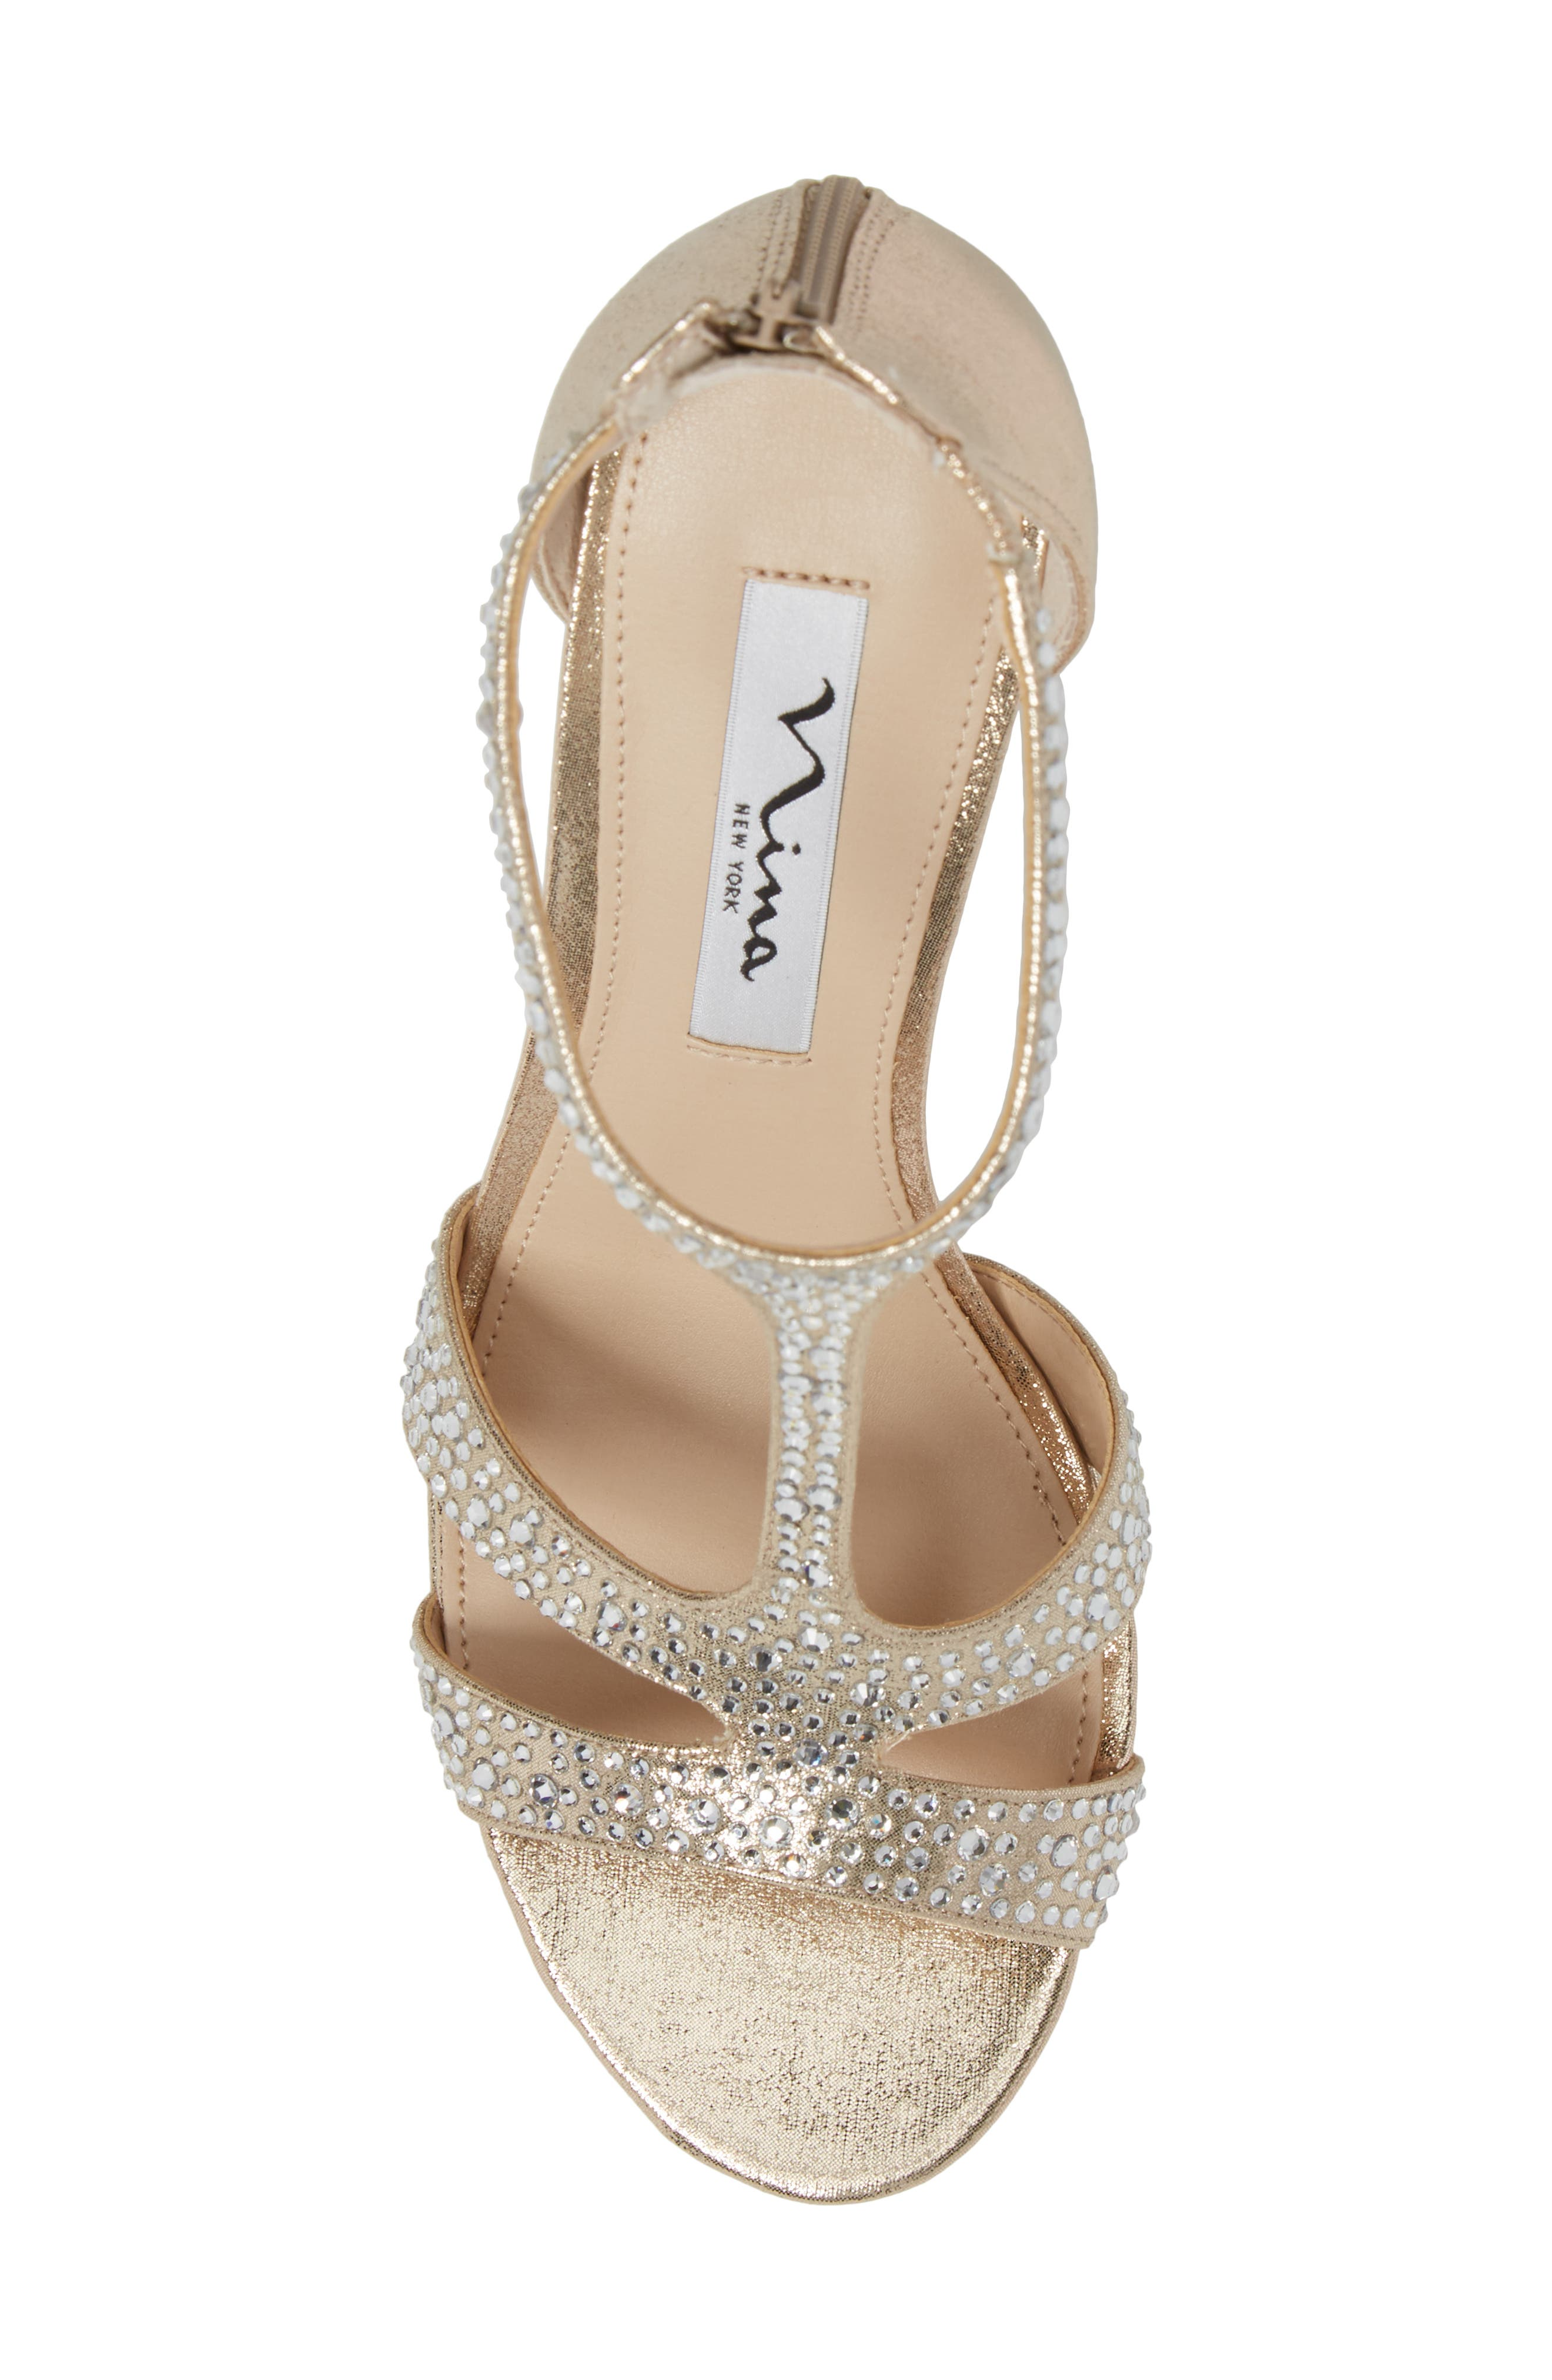 Brietta Embellished T-Strap Sandal,                             Alternate thumbnail 5, color,                             TAUPE FABRIC